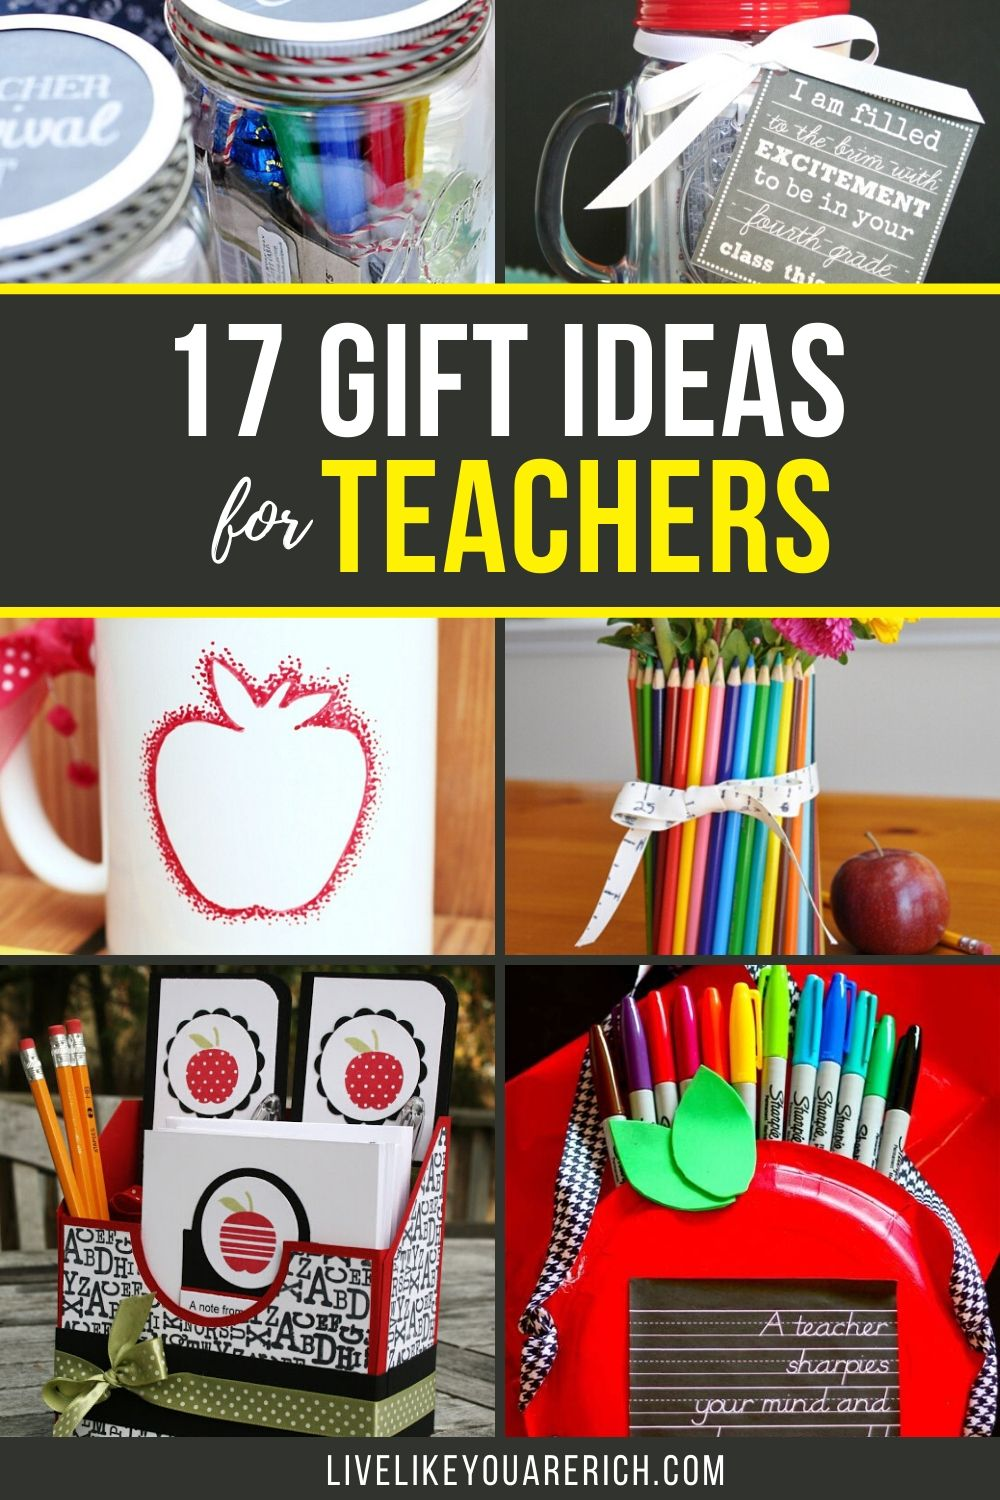 When I taught English in Taiwan, I loved it when I was given a gift. It showed me that the parents appreciated my teaching and working with their children. I'm a big fan of giving teachers gifts. Here are 17 useful, fun, and creative gift ideas for the teachers in your children's lives.